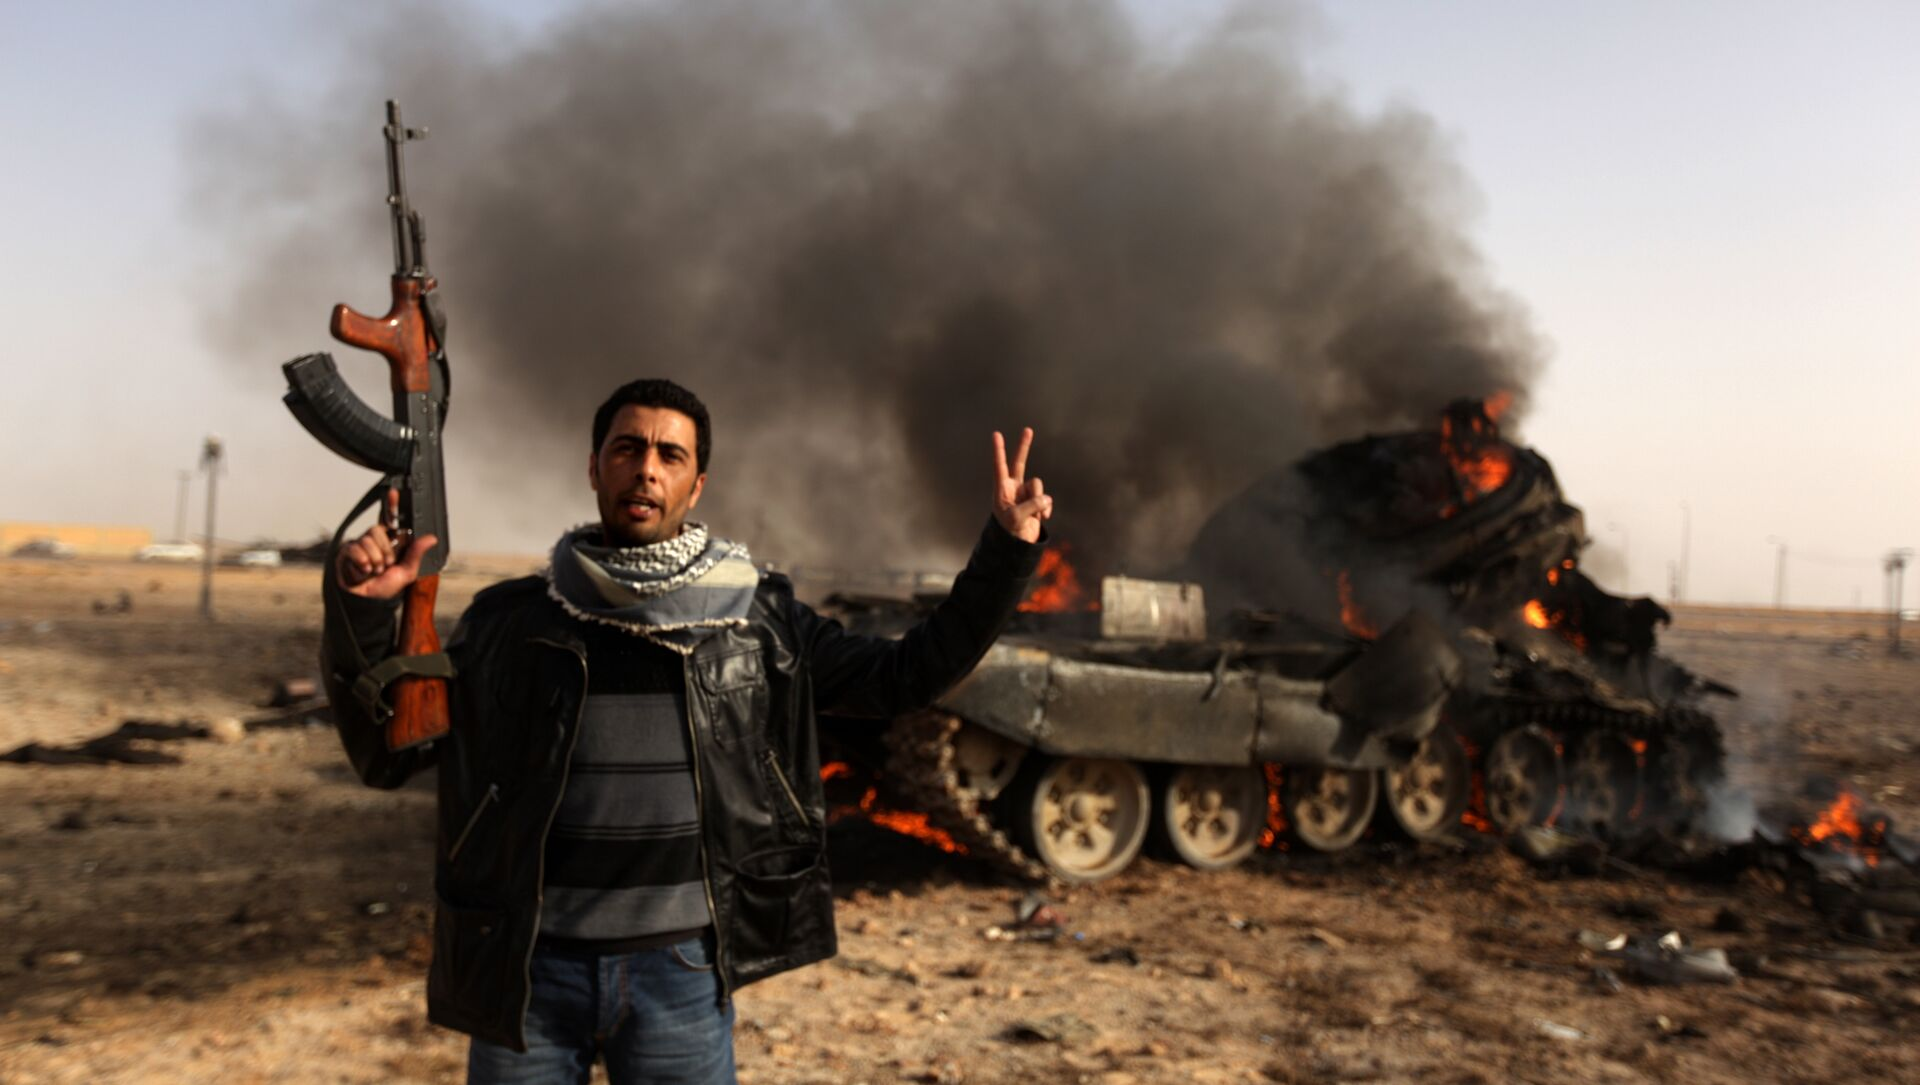 A Libyan rebel flashes a V-sign in front of burning tank belonging to loyalist forces bombed by coalition air force in the town of Ajdabiya on March 26, 2011 - Sputnik International, 1920, 15.02.2021